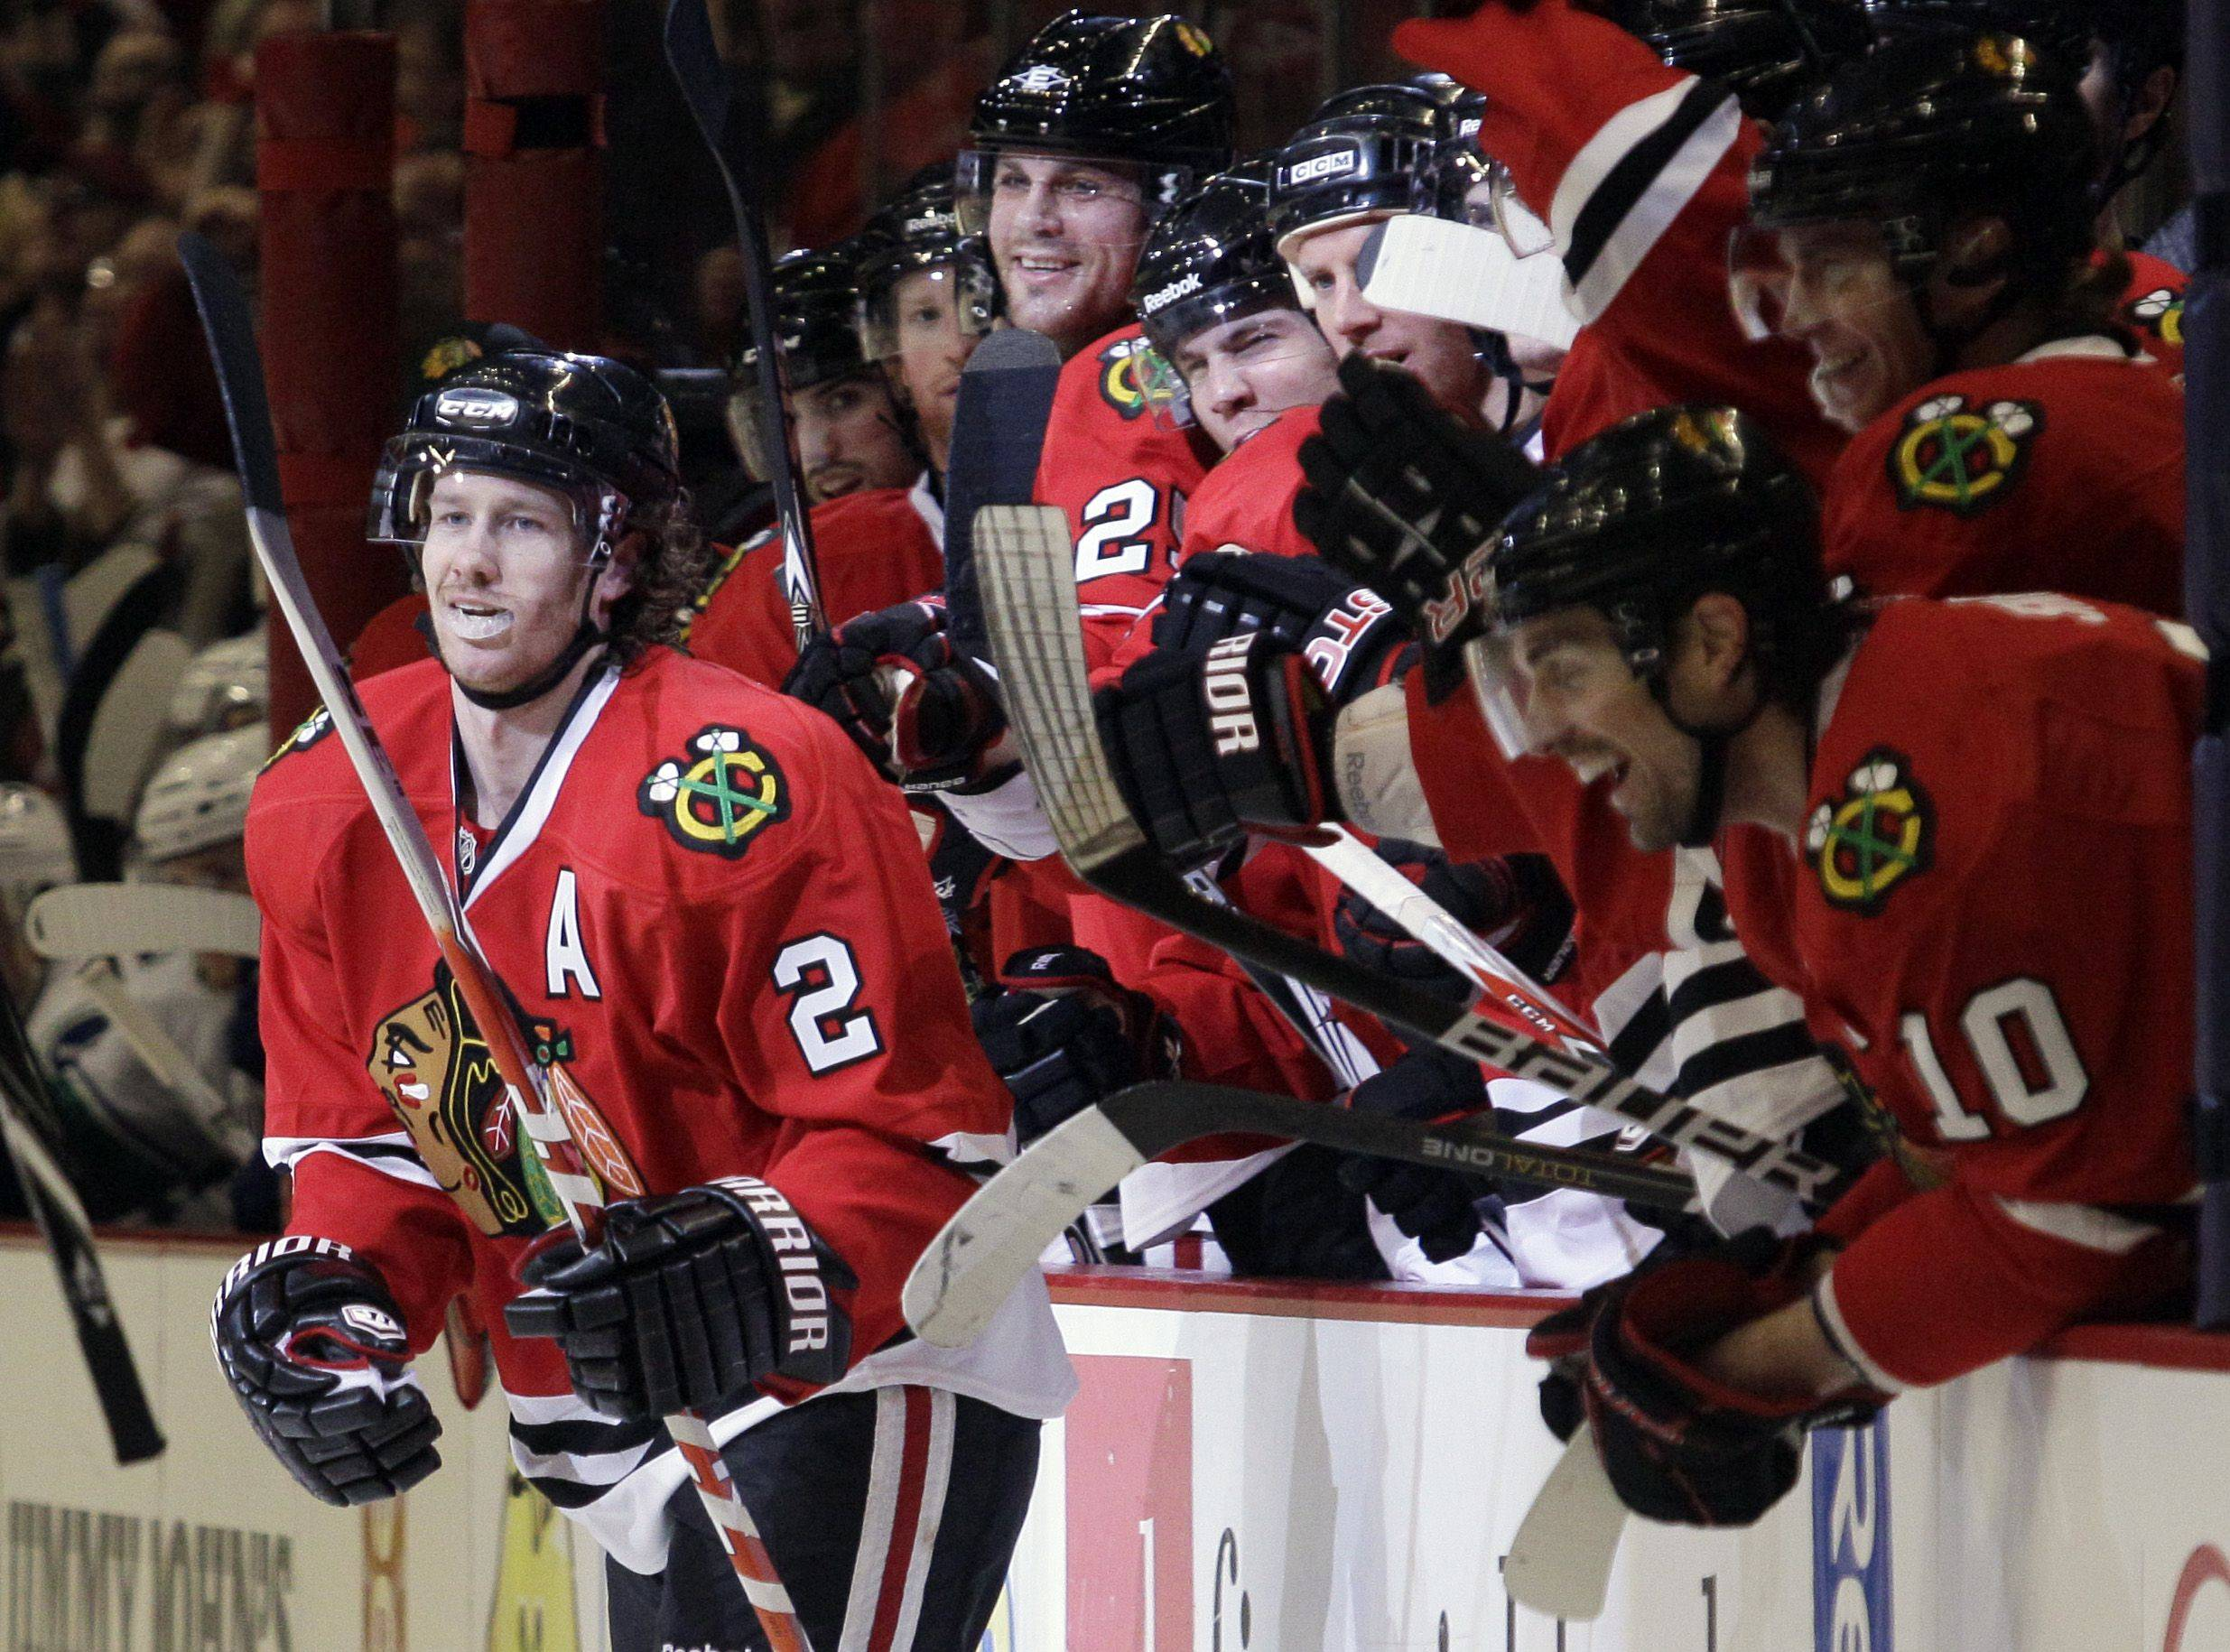 Duncan Keith celebrates his second-period goal with his teammates during Game 4.